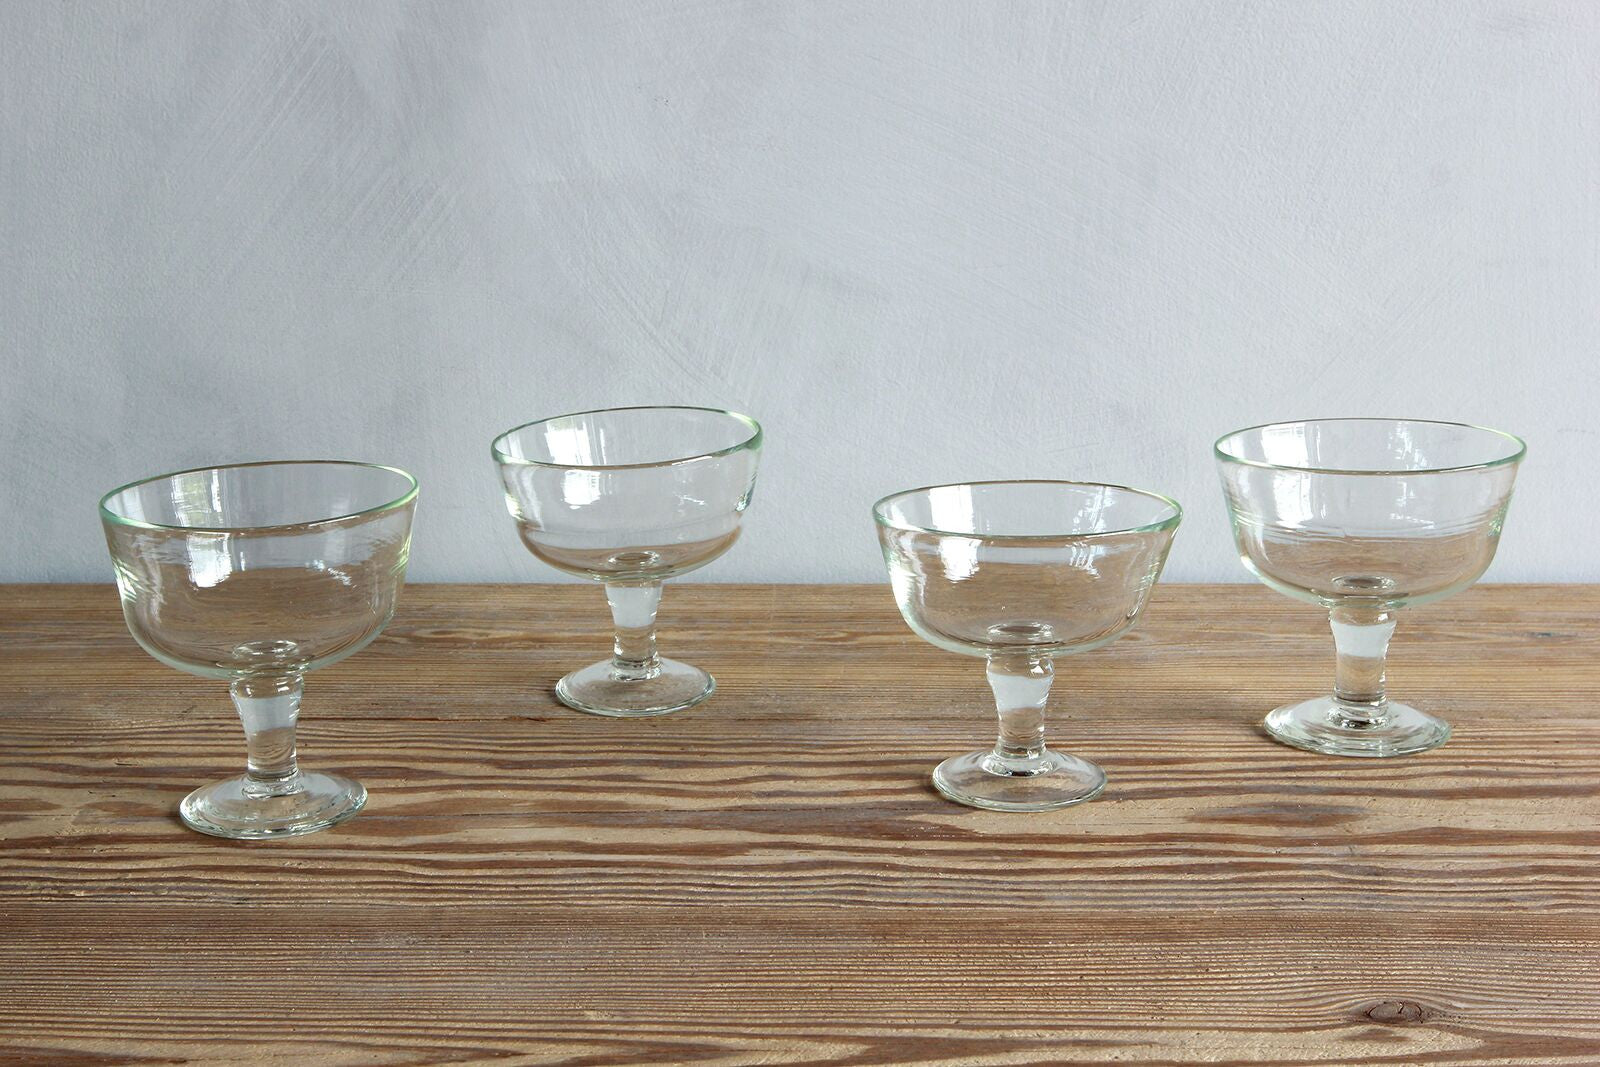 Four La Soufflerie Ice Cream Glasses.